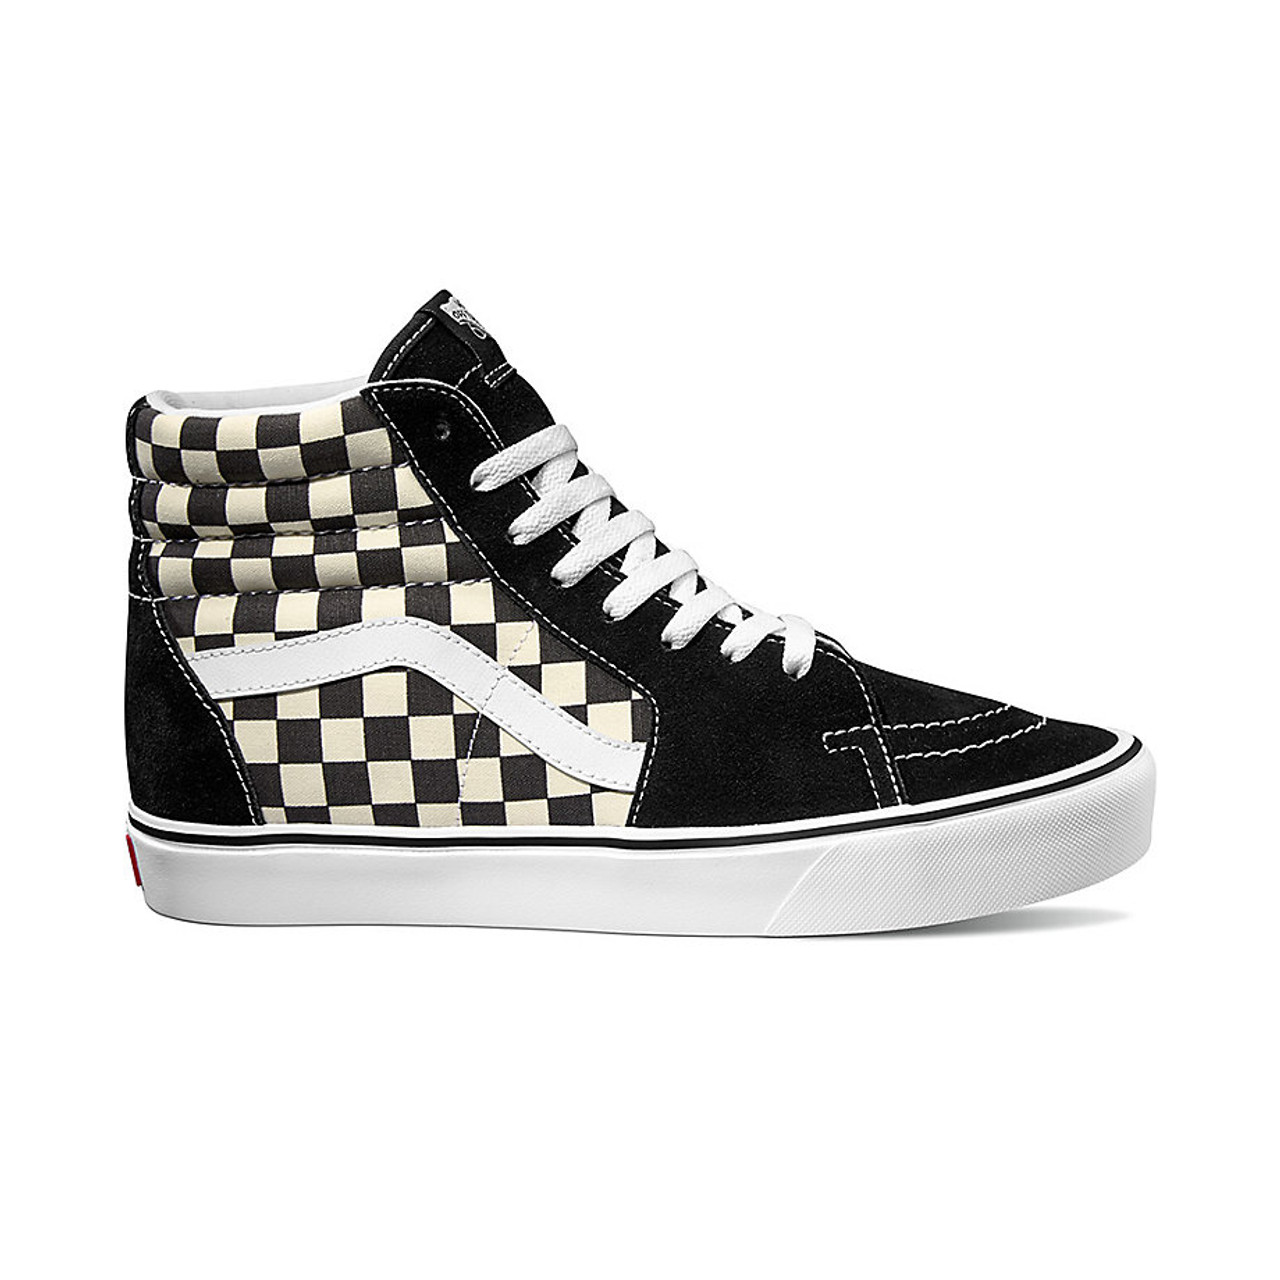 2f2e8bb708950f Vans Shoes - Sk8-Hi Lite - Checkerboard Black White - Surf and Dirt